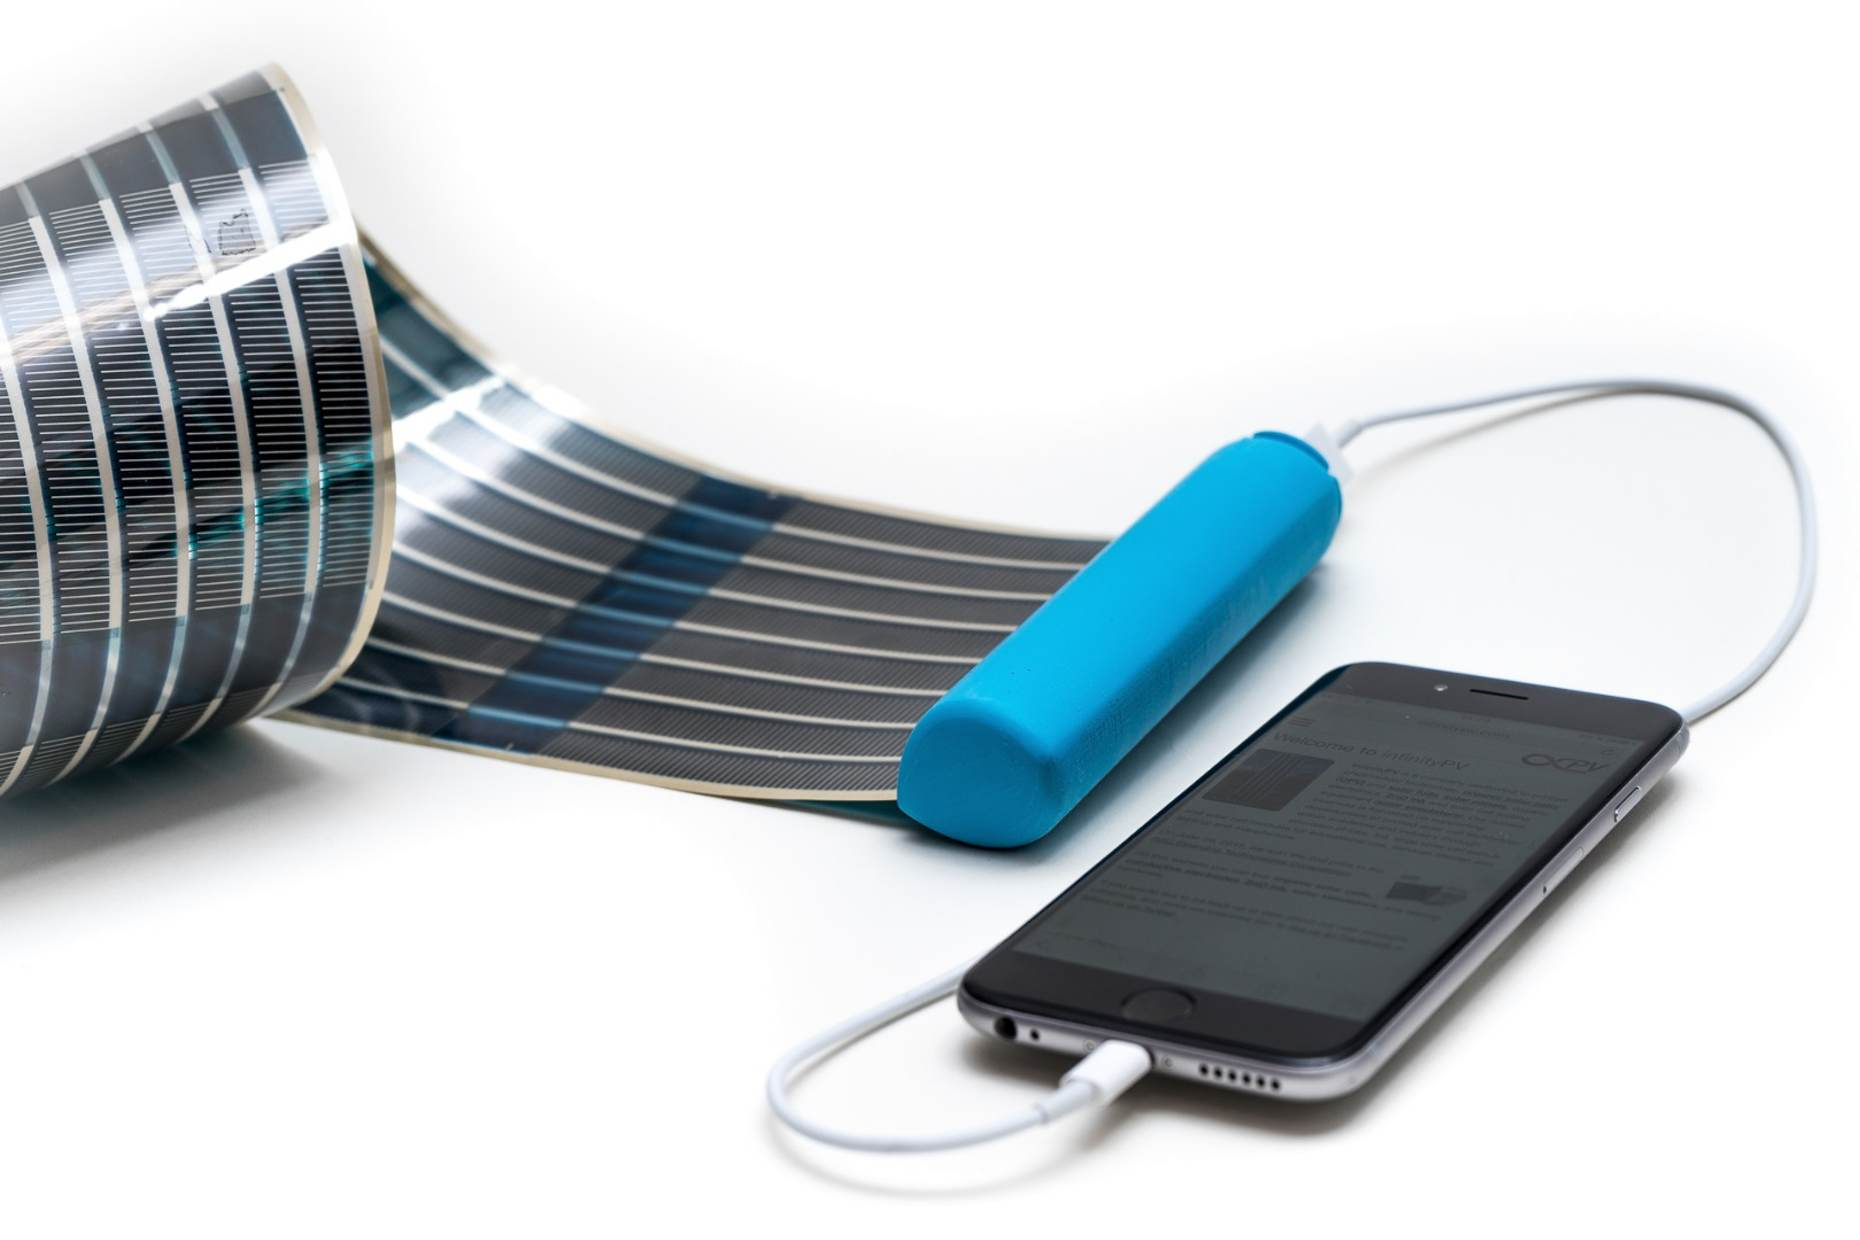 Heli On Super Compact Portable Solar Charger Fits In Any Pocket The Green Optimistic